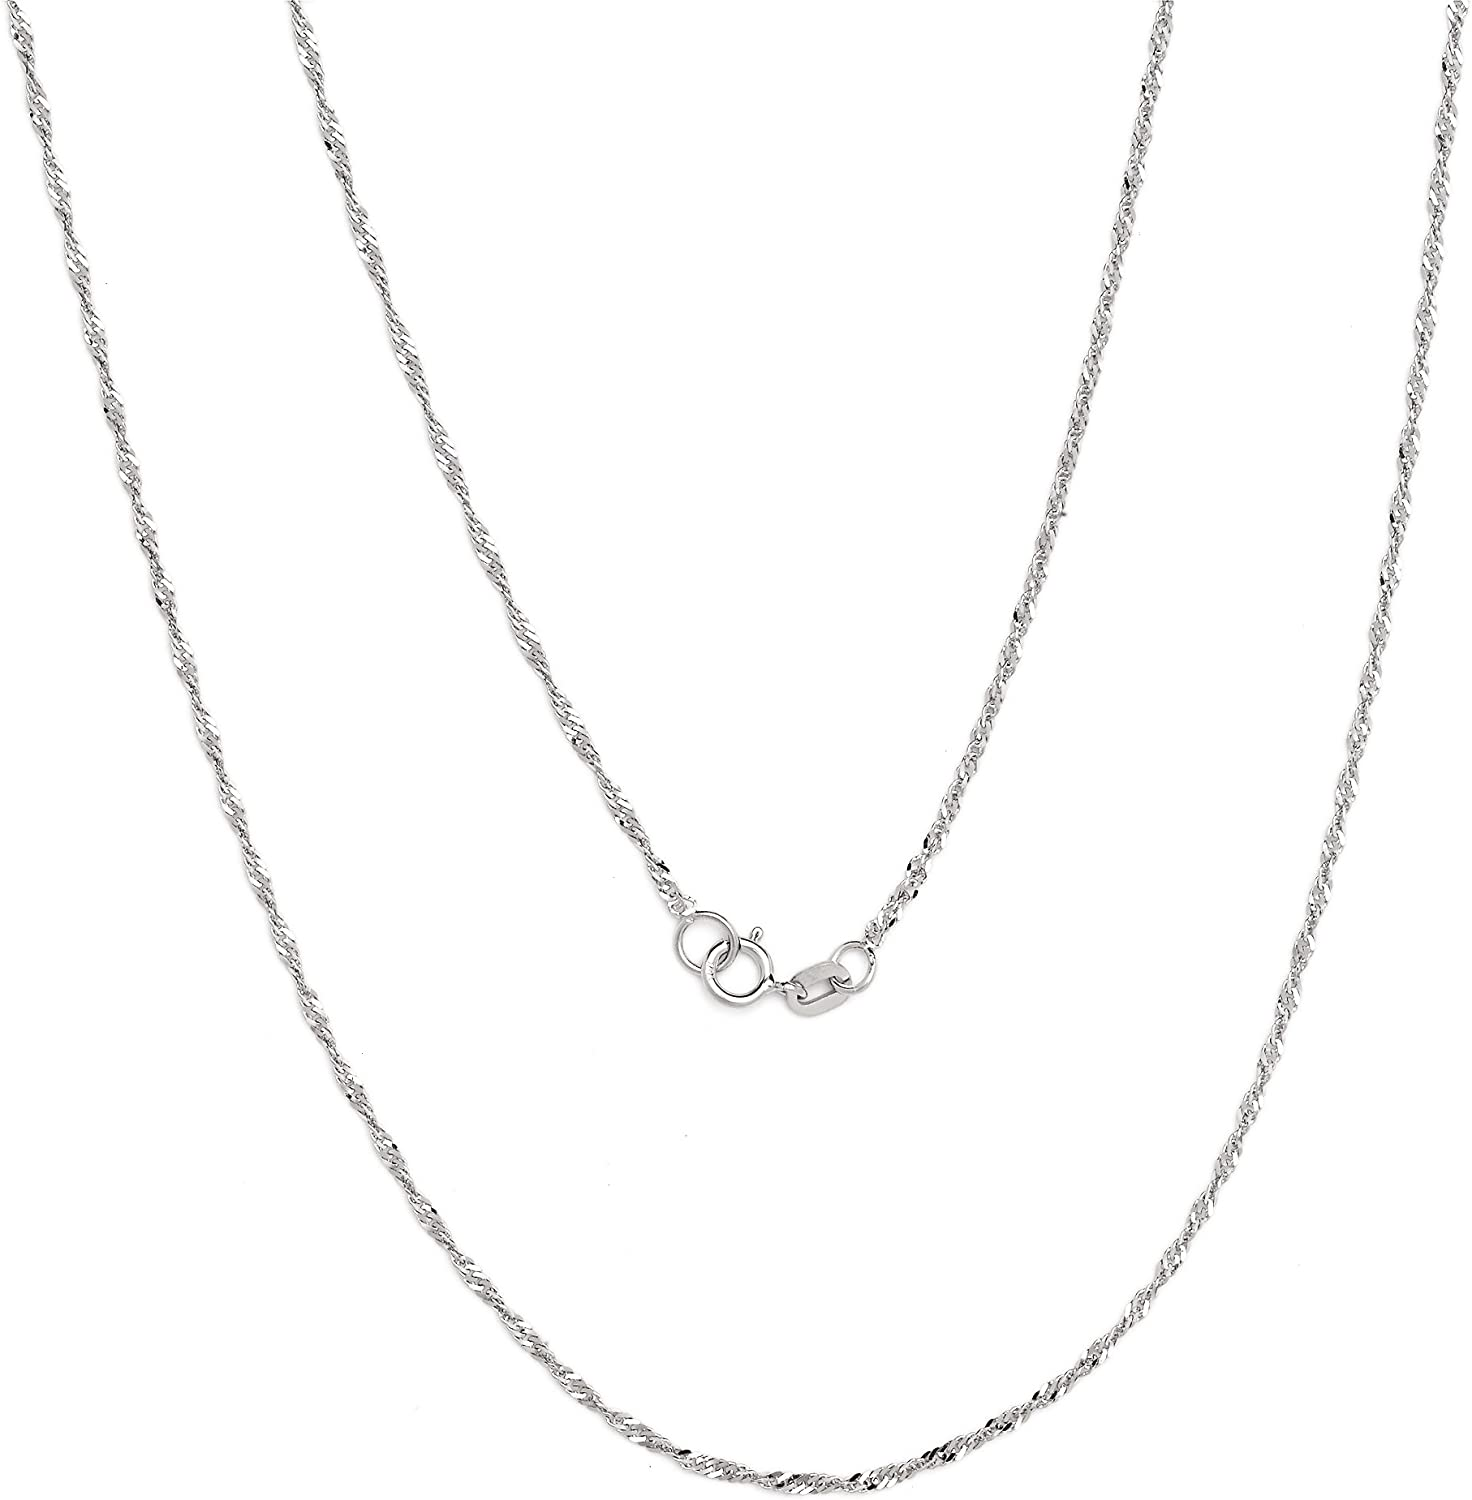 Floreo 10k Yellow or White Gold 1.3mm Thin Singapore Chain Necklace